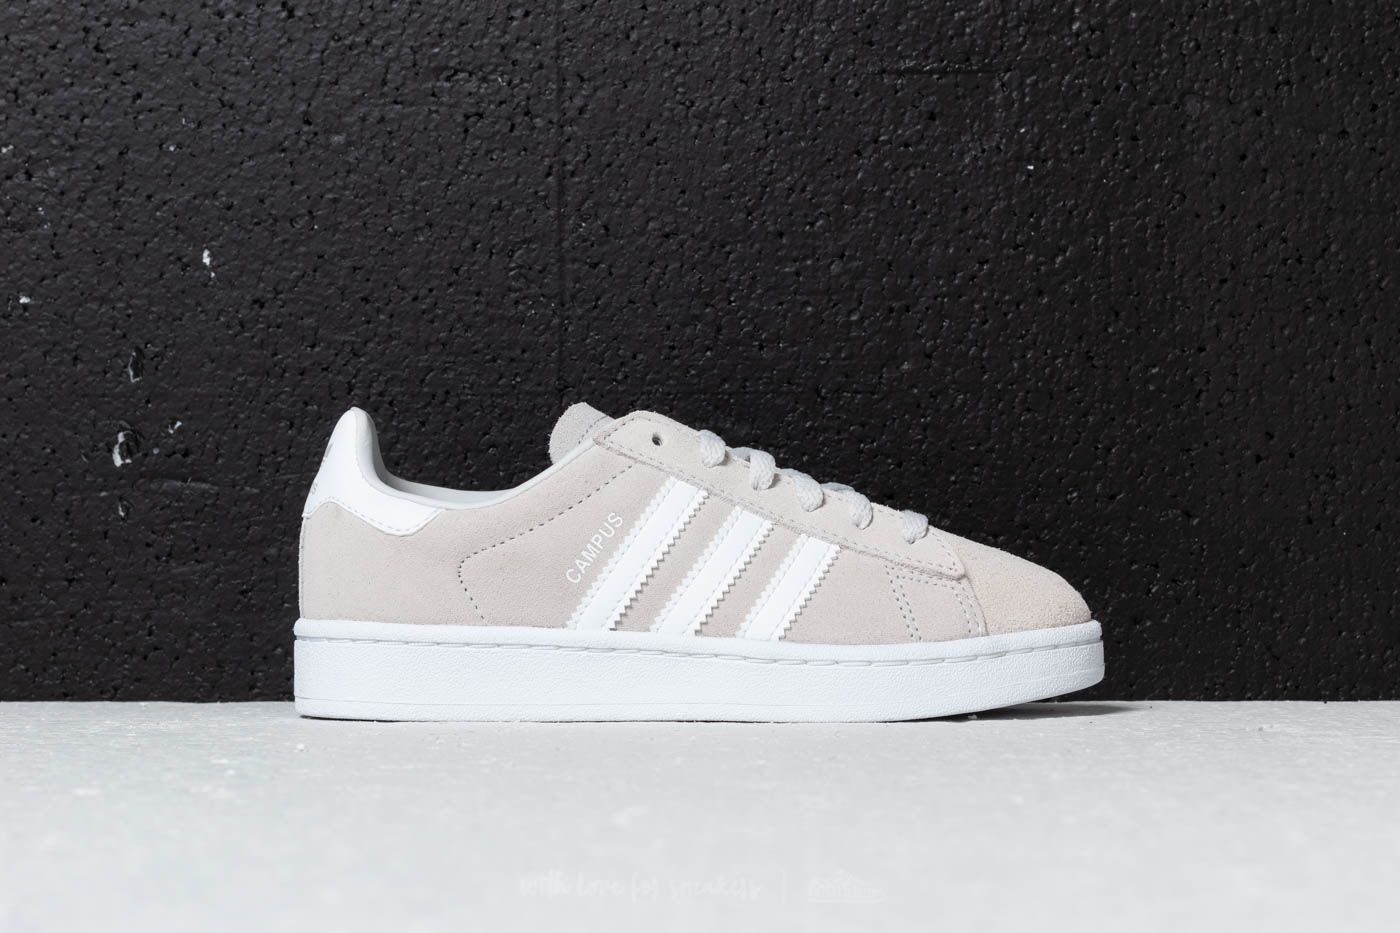 low priced 627c8 a9fb7 adidas Campus C Grey One  Ftw White  Ftw White at a great price 36